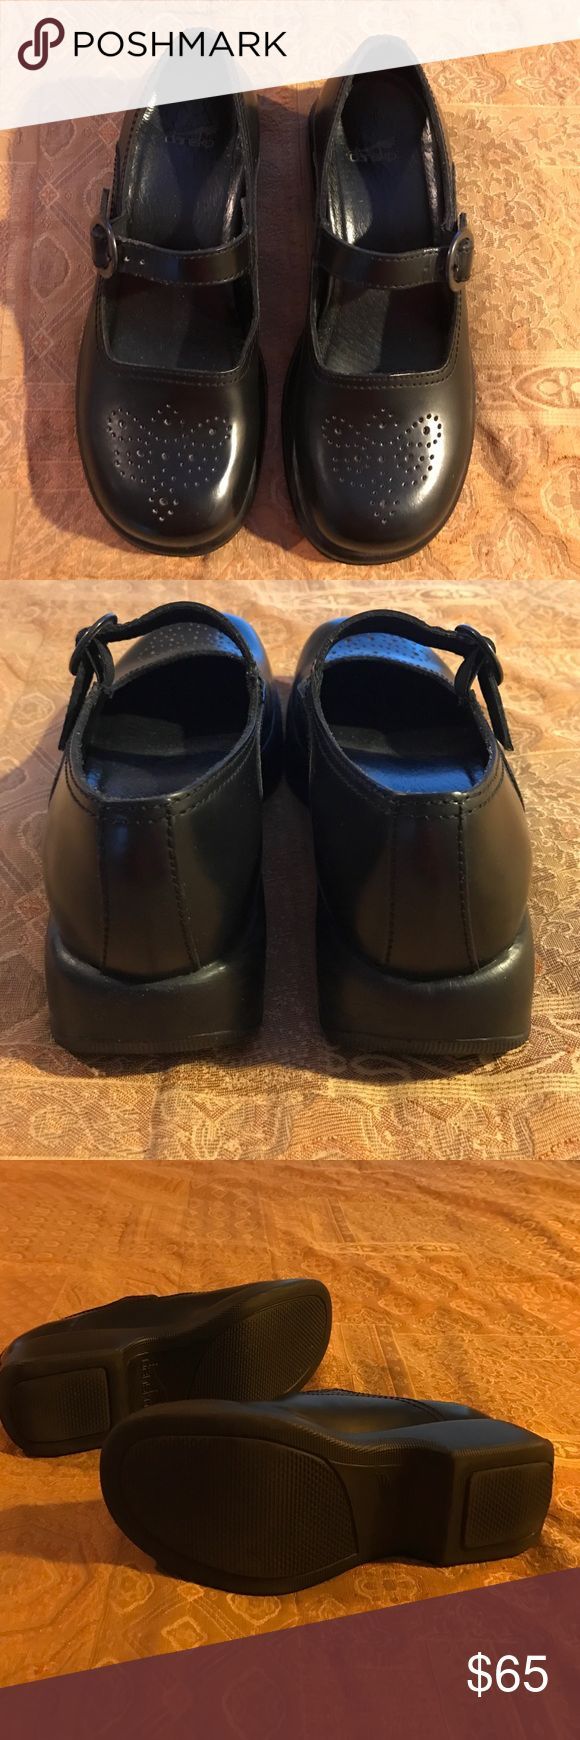 Weekend sale Dansko size 38 Good condition Dansko clogs size 38. Some scuffing as expected. Dansko Shoes